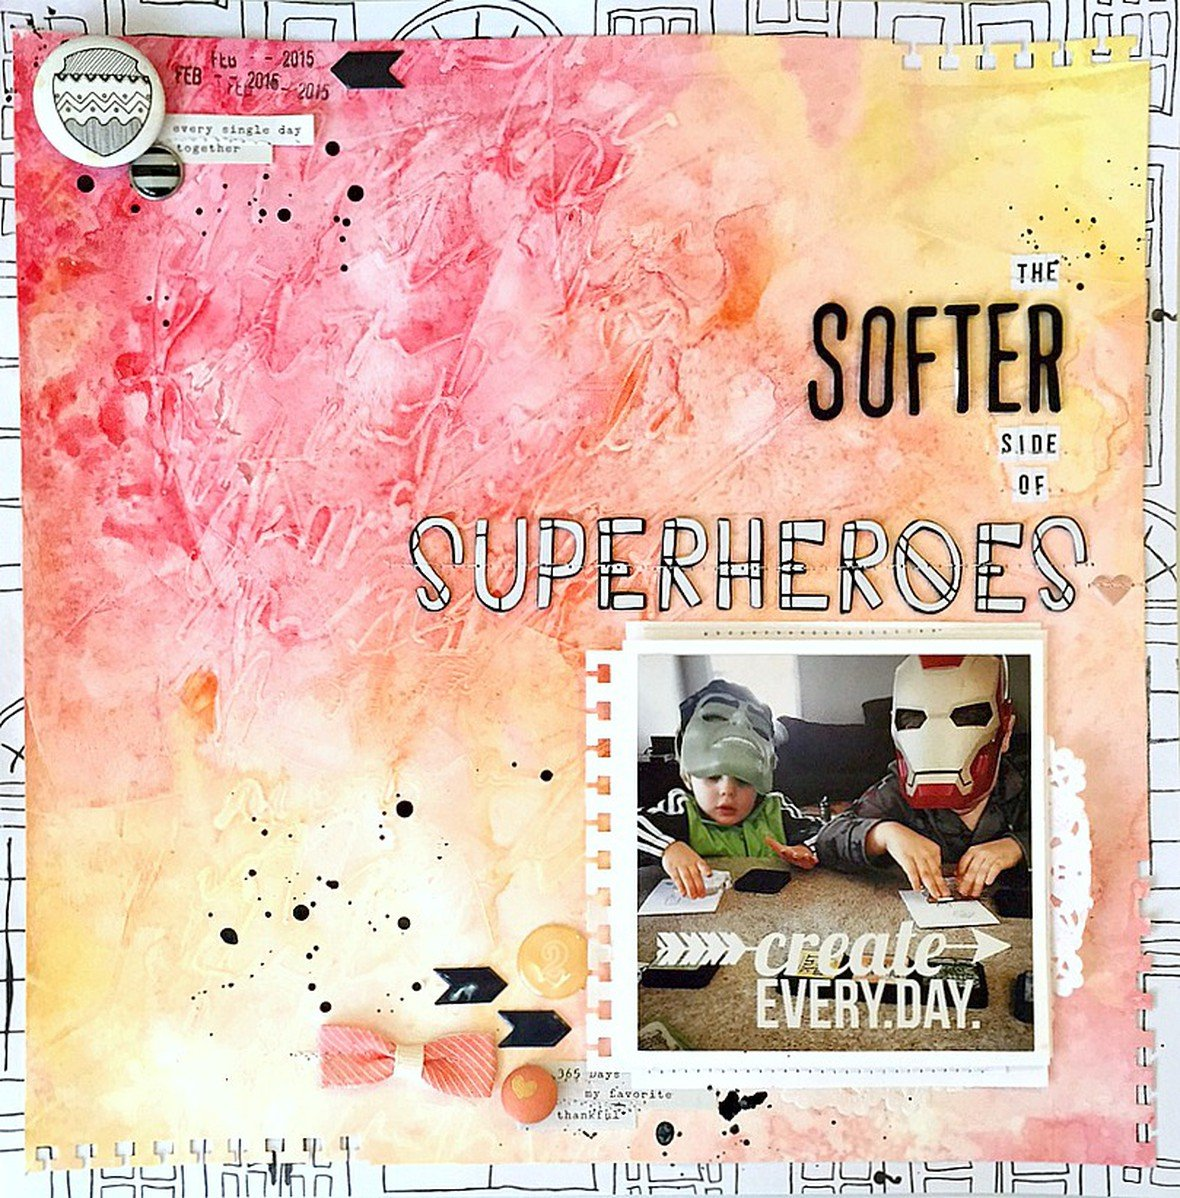 The softer side of superheroes layout   ls original